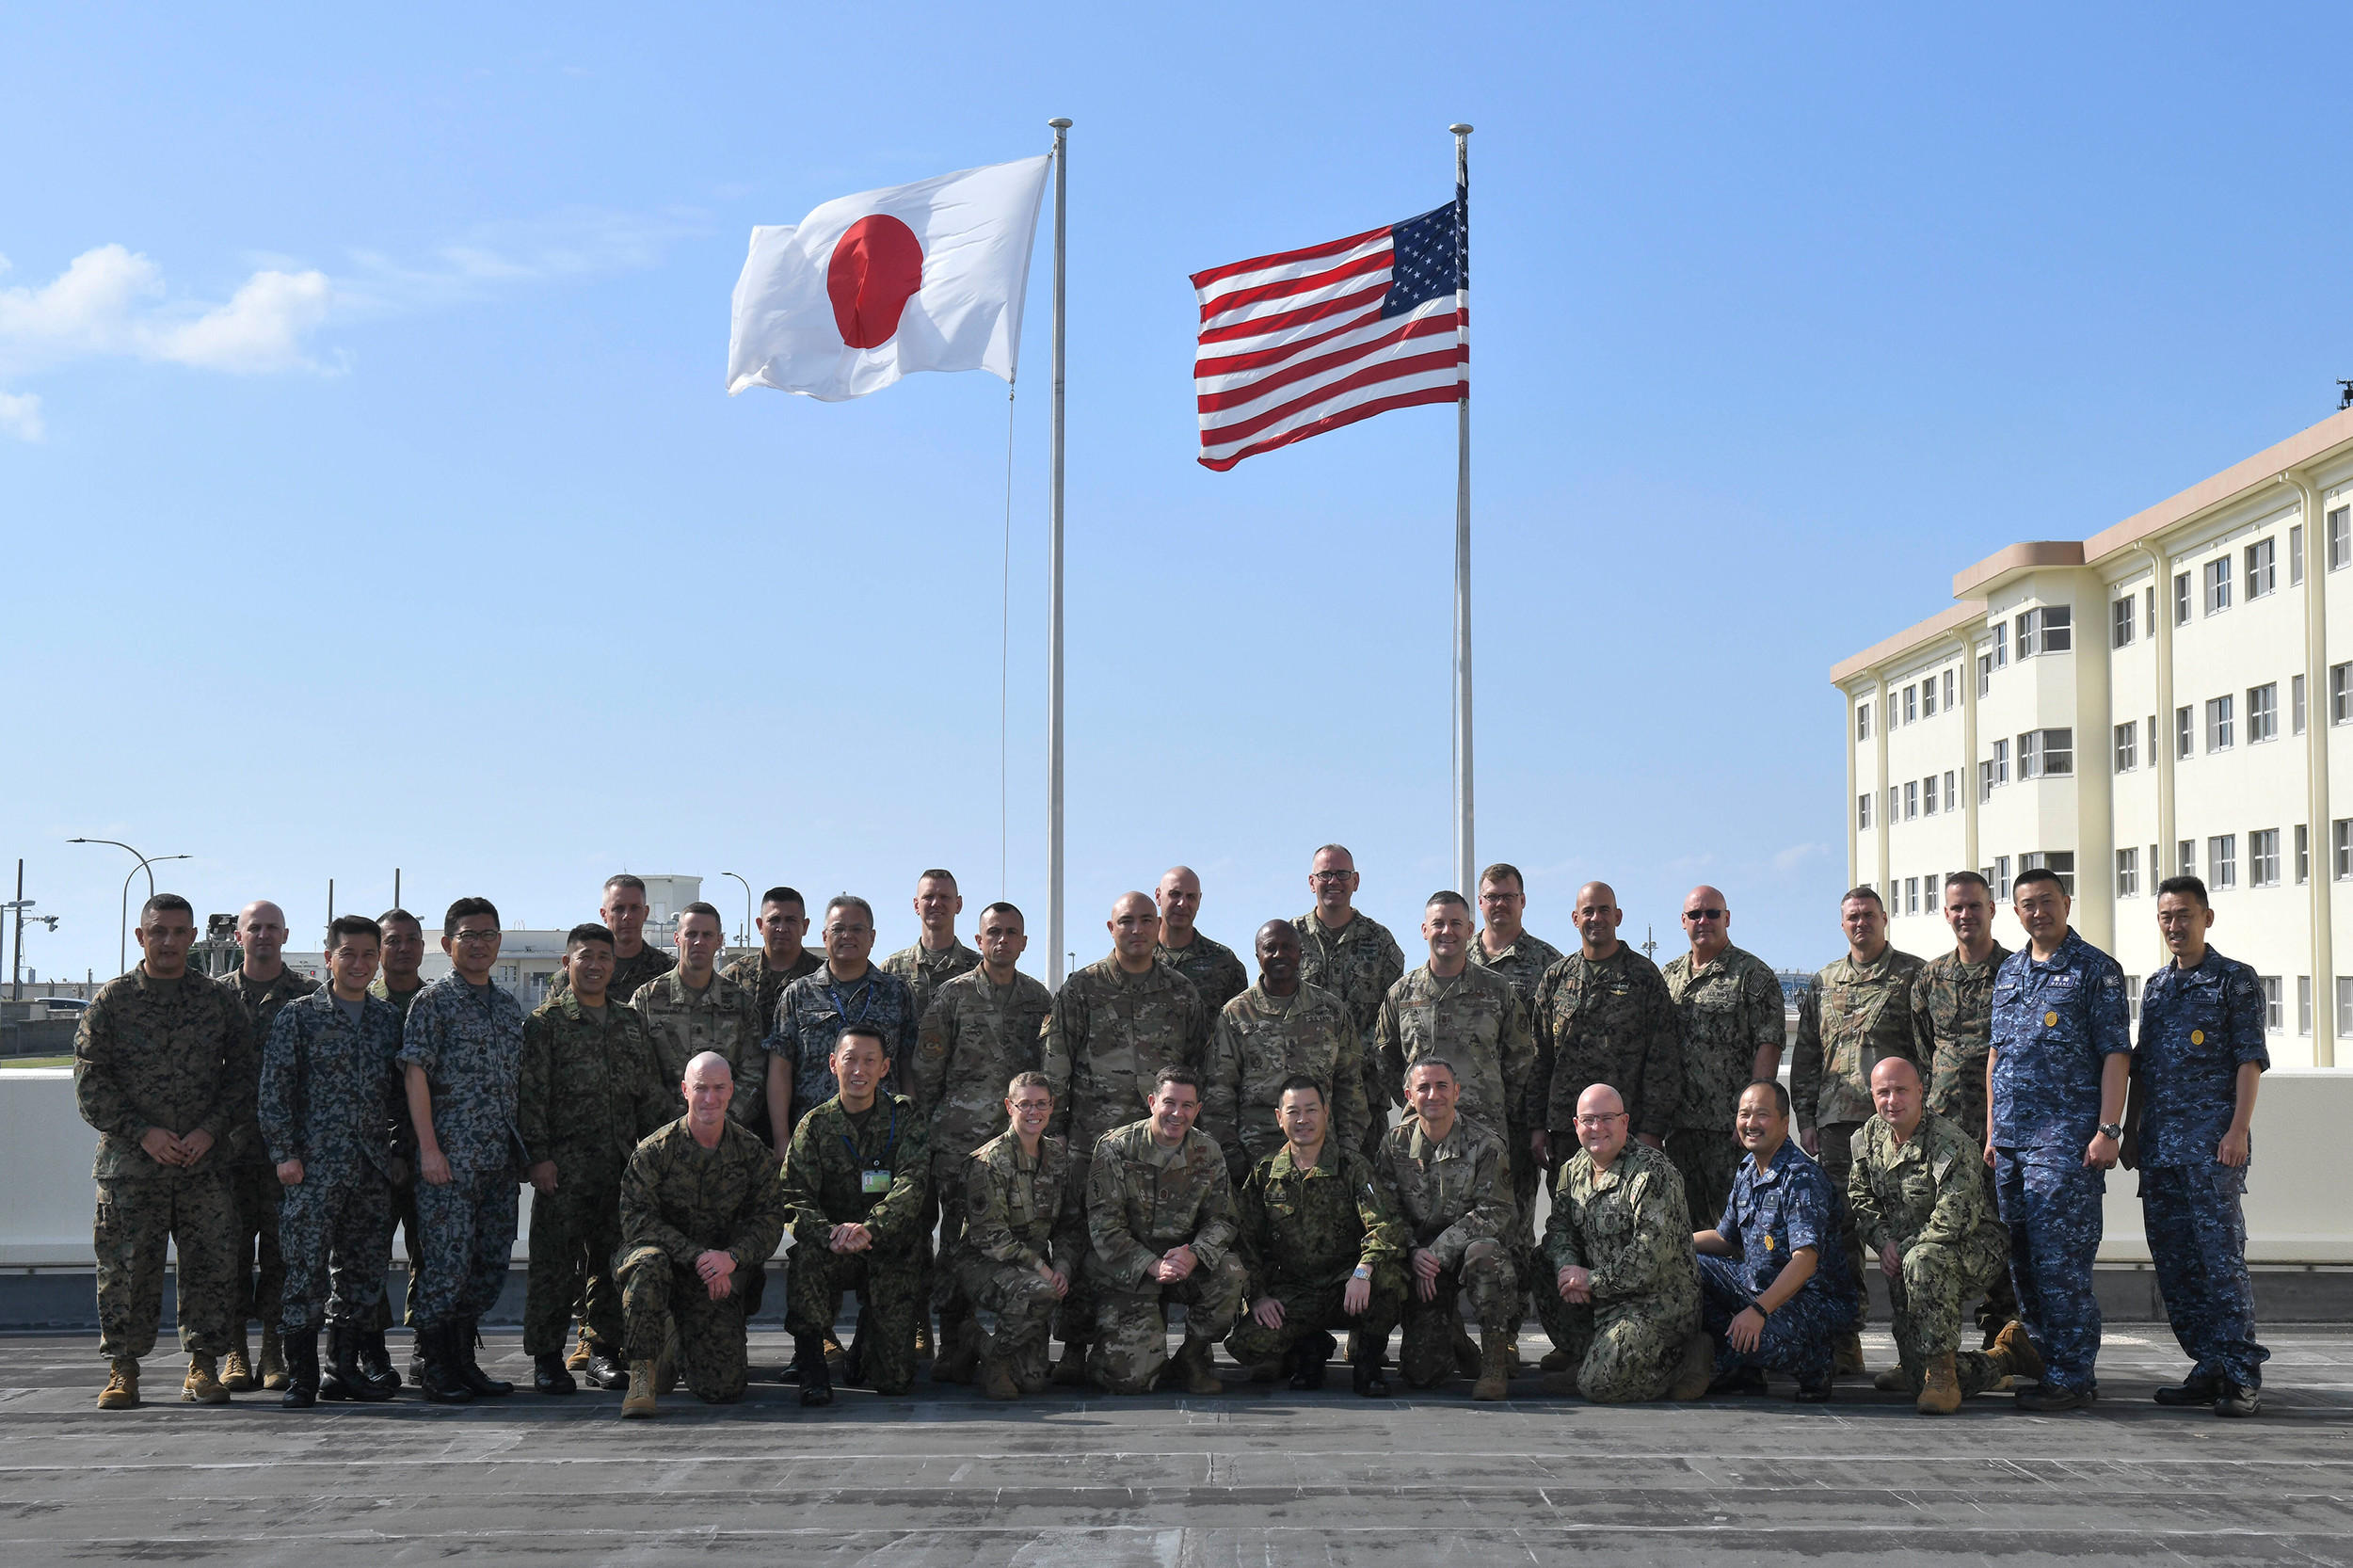 Japan-US Alliance Crucial for Stability in Indo-Pacific: Japanese Gen at Rasina on Quad Grouping